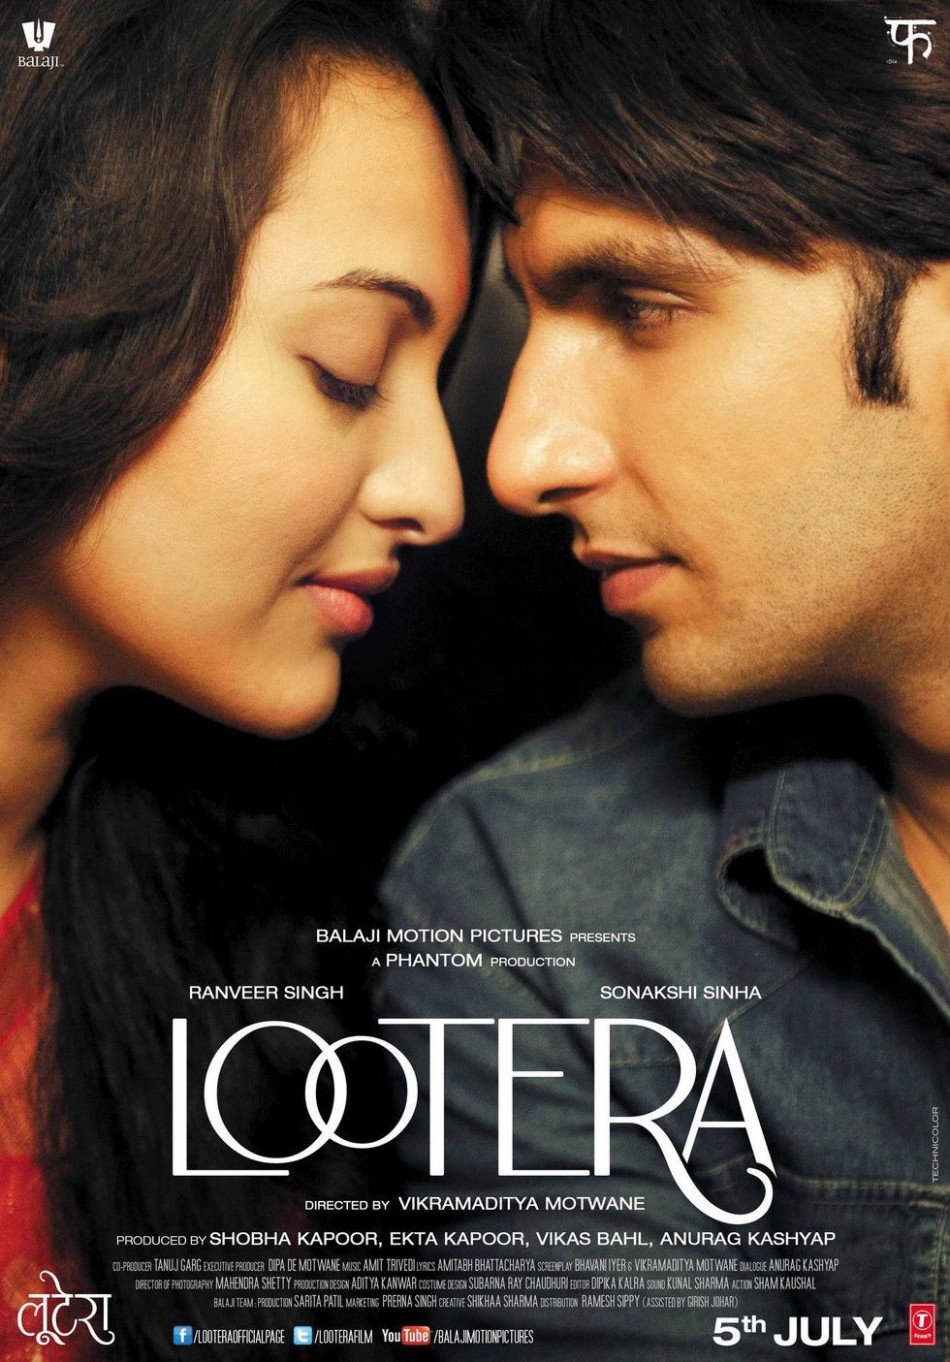 Lootera - Movie Poster #3 | Bollywood Movie Posters in ...